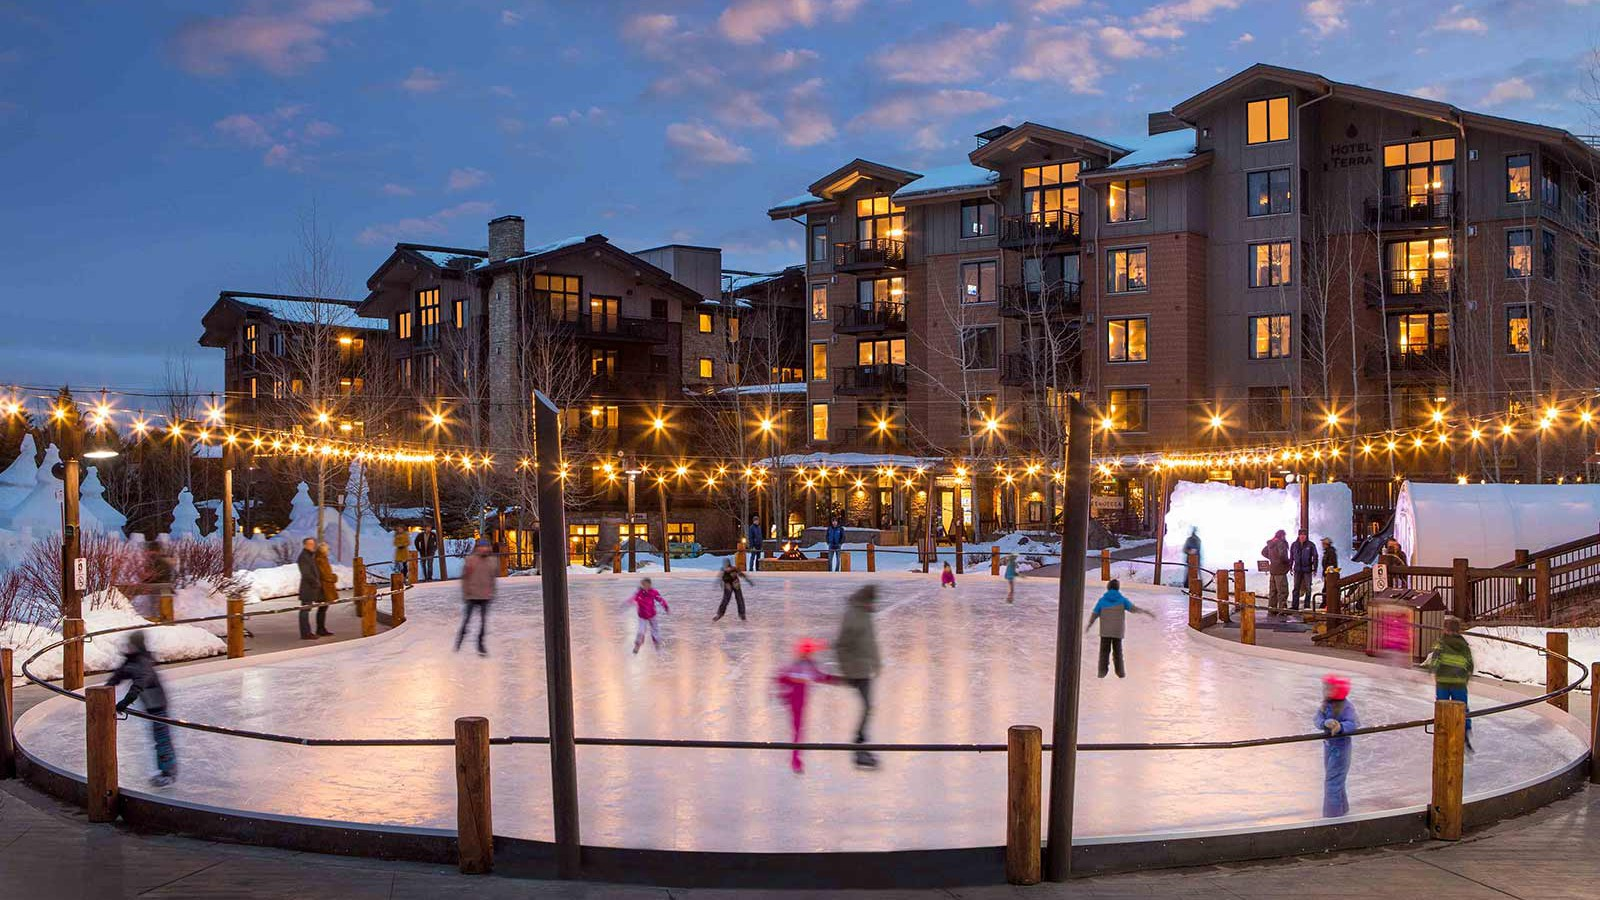 Jackson Hole Ski Resort, USA - Teton-Village Ice skating